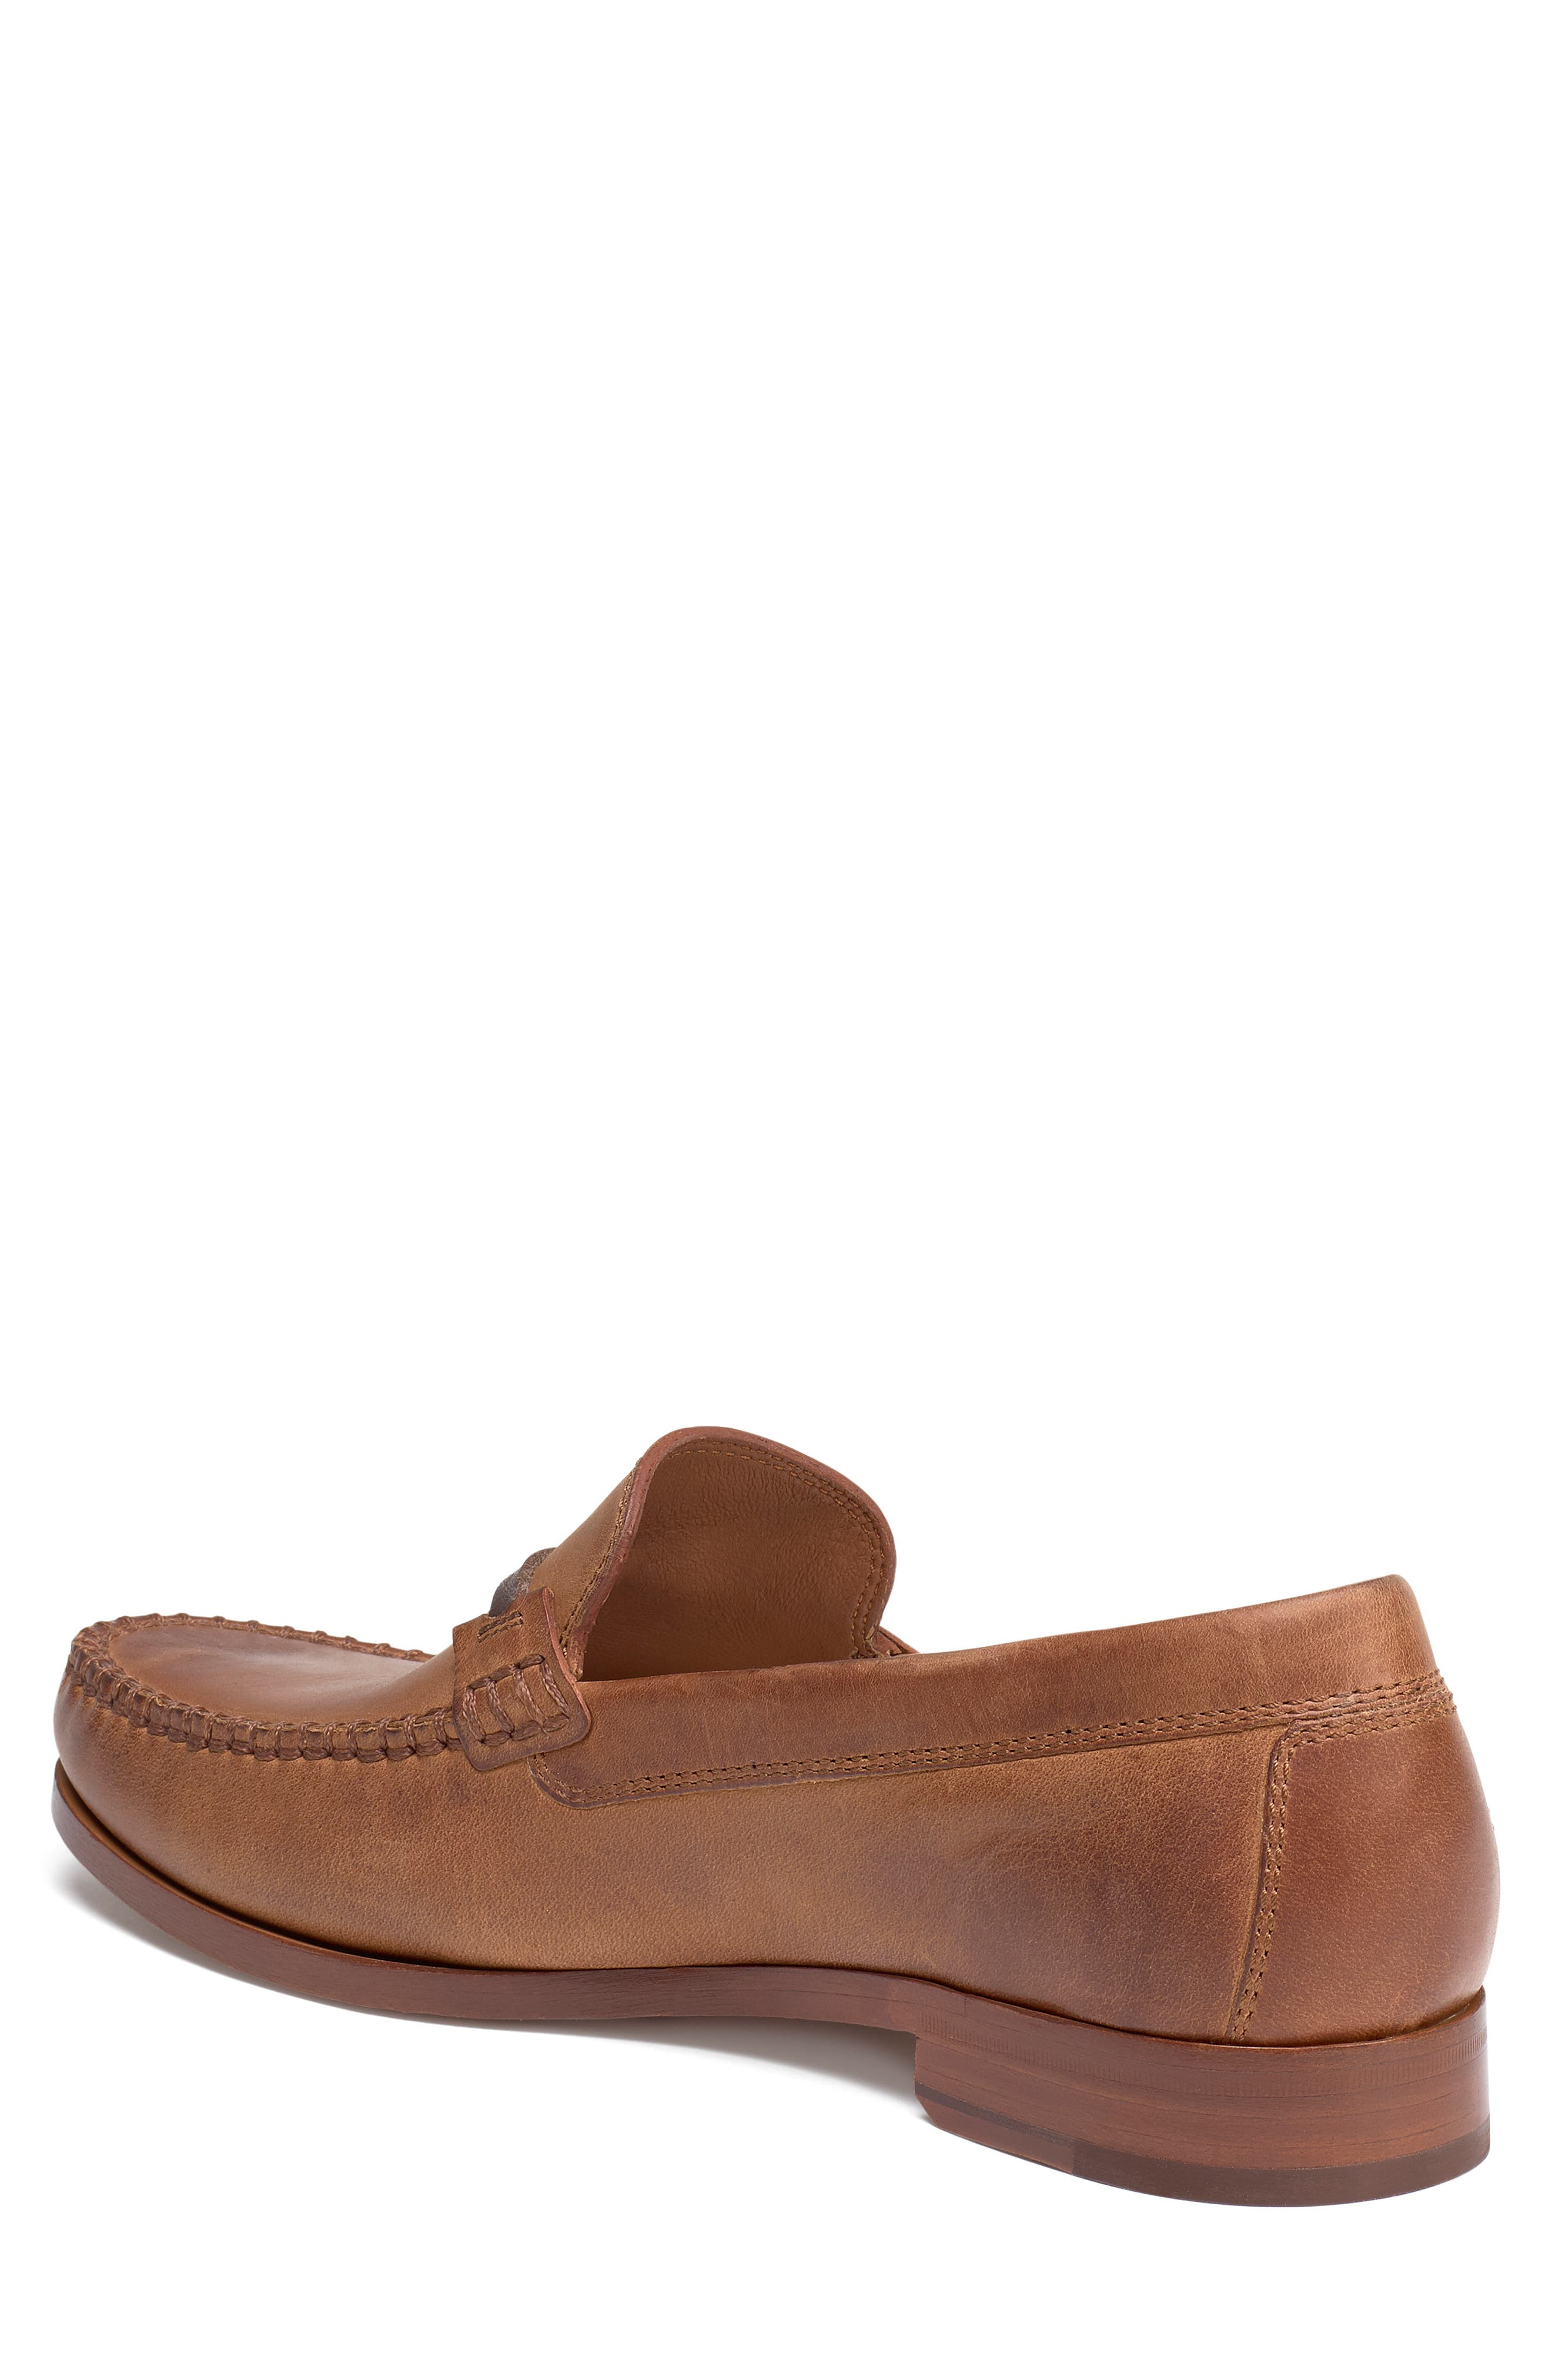 'Sawyer' Loafer,                             Alternate thumbnail 2, color,                             TAN LEATHER